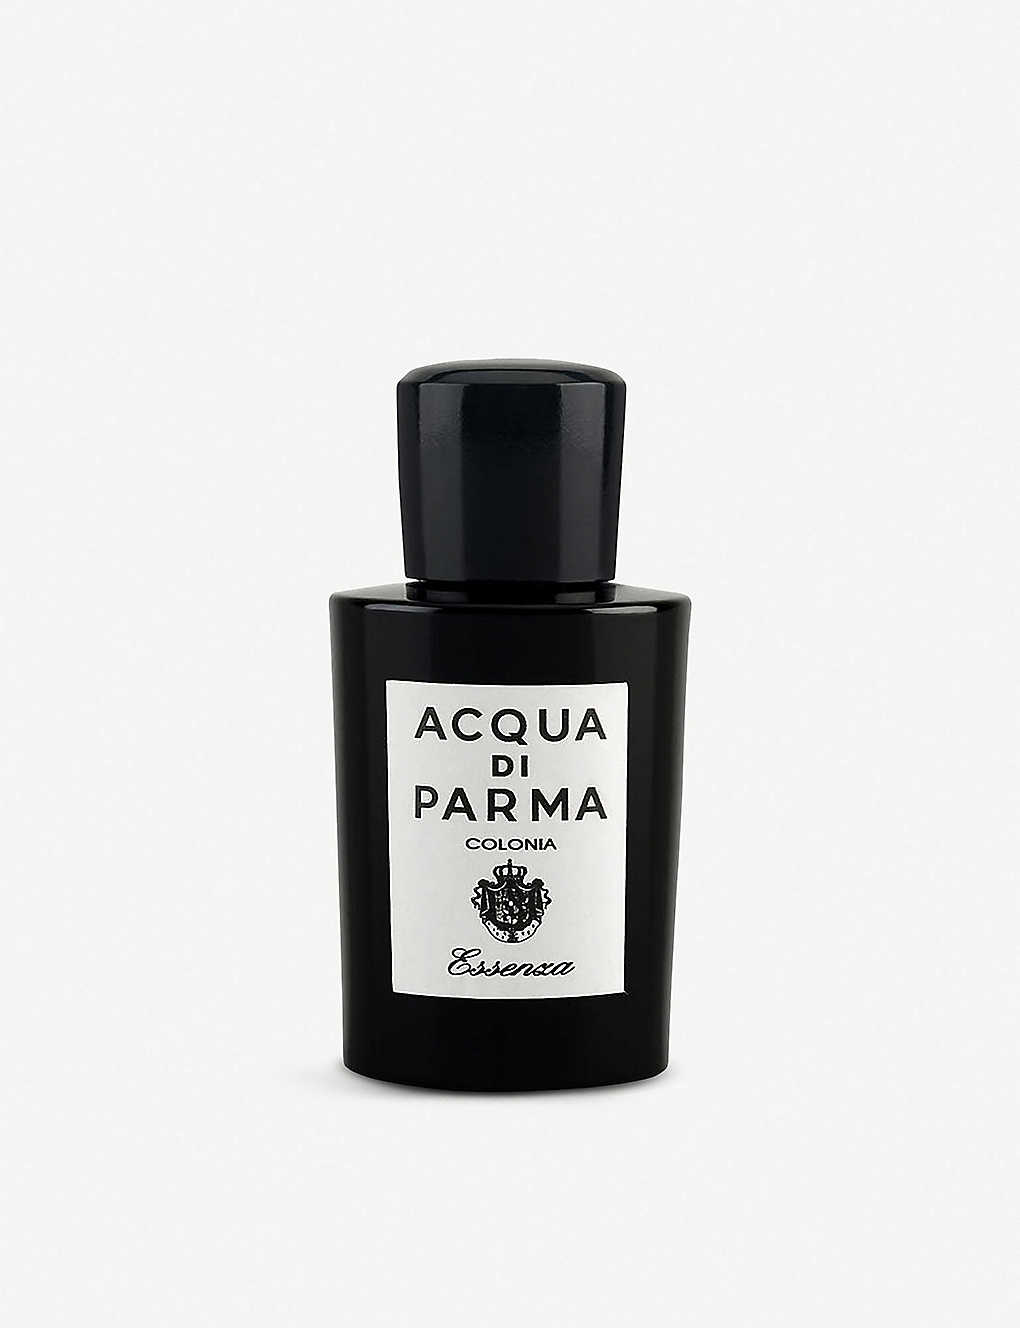 ACQUA DI PARMA: Colonia Essenza Eau de Cologne 20ml